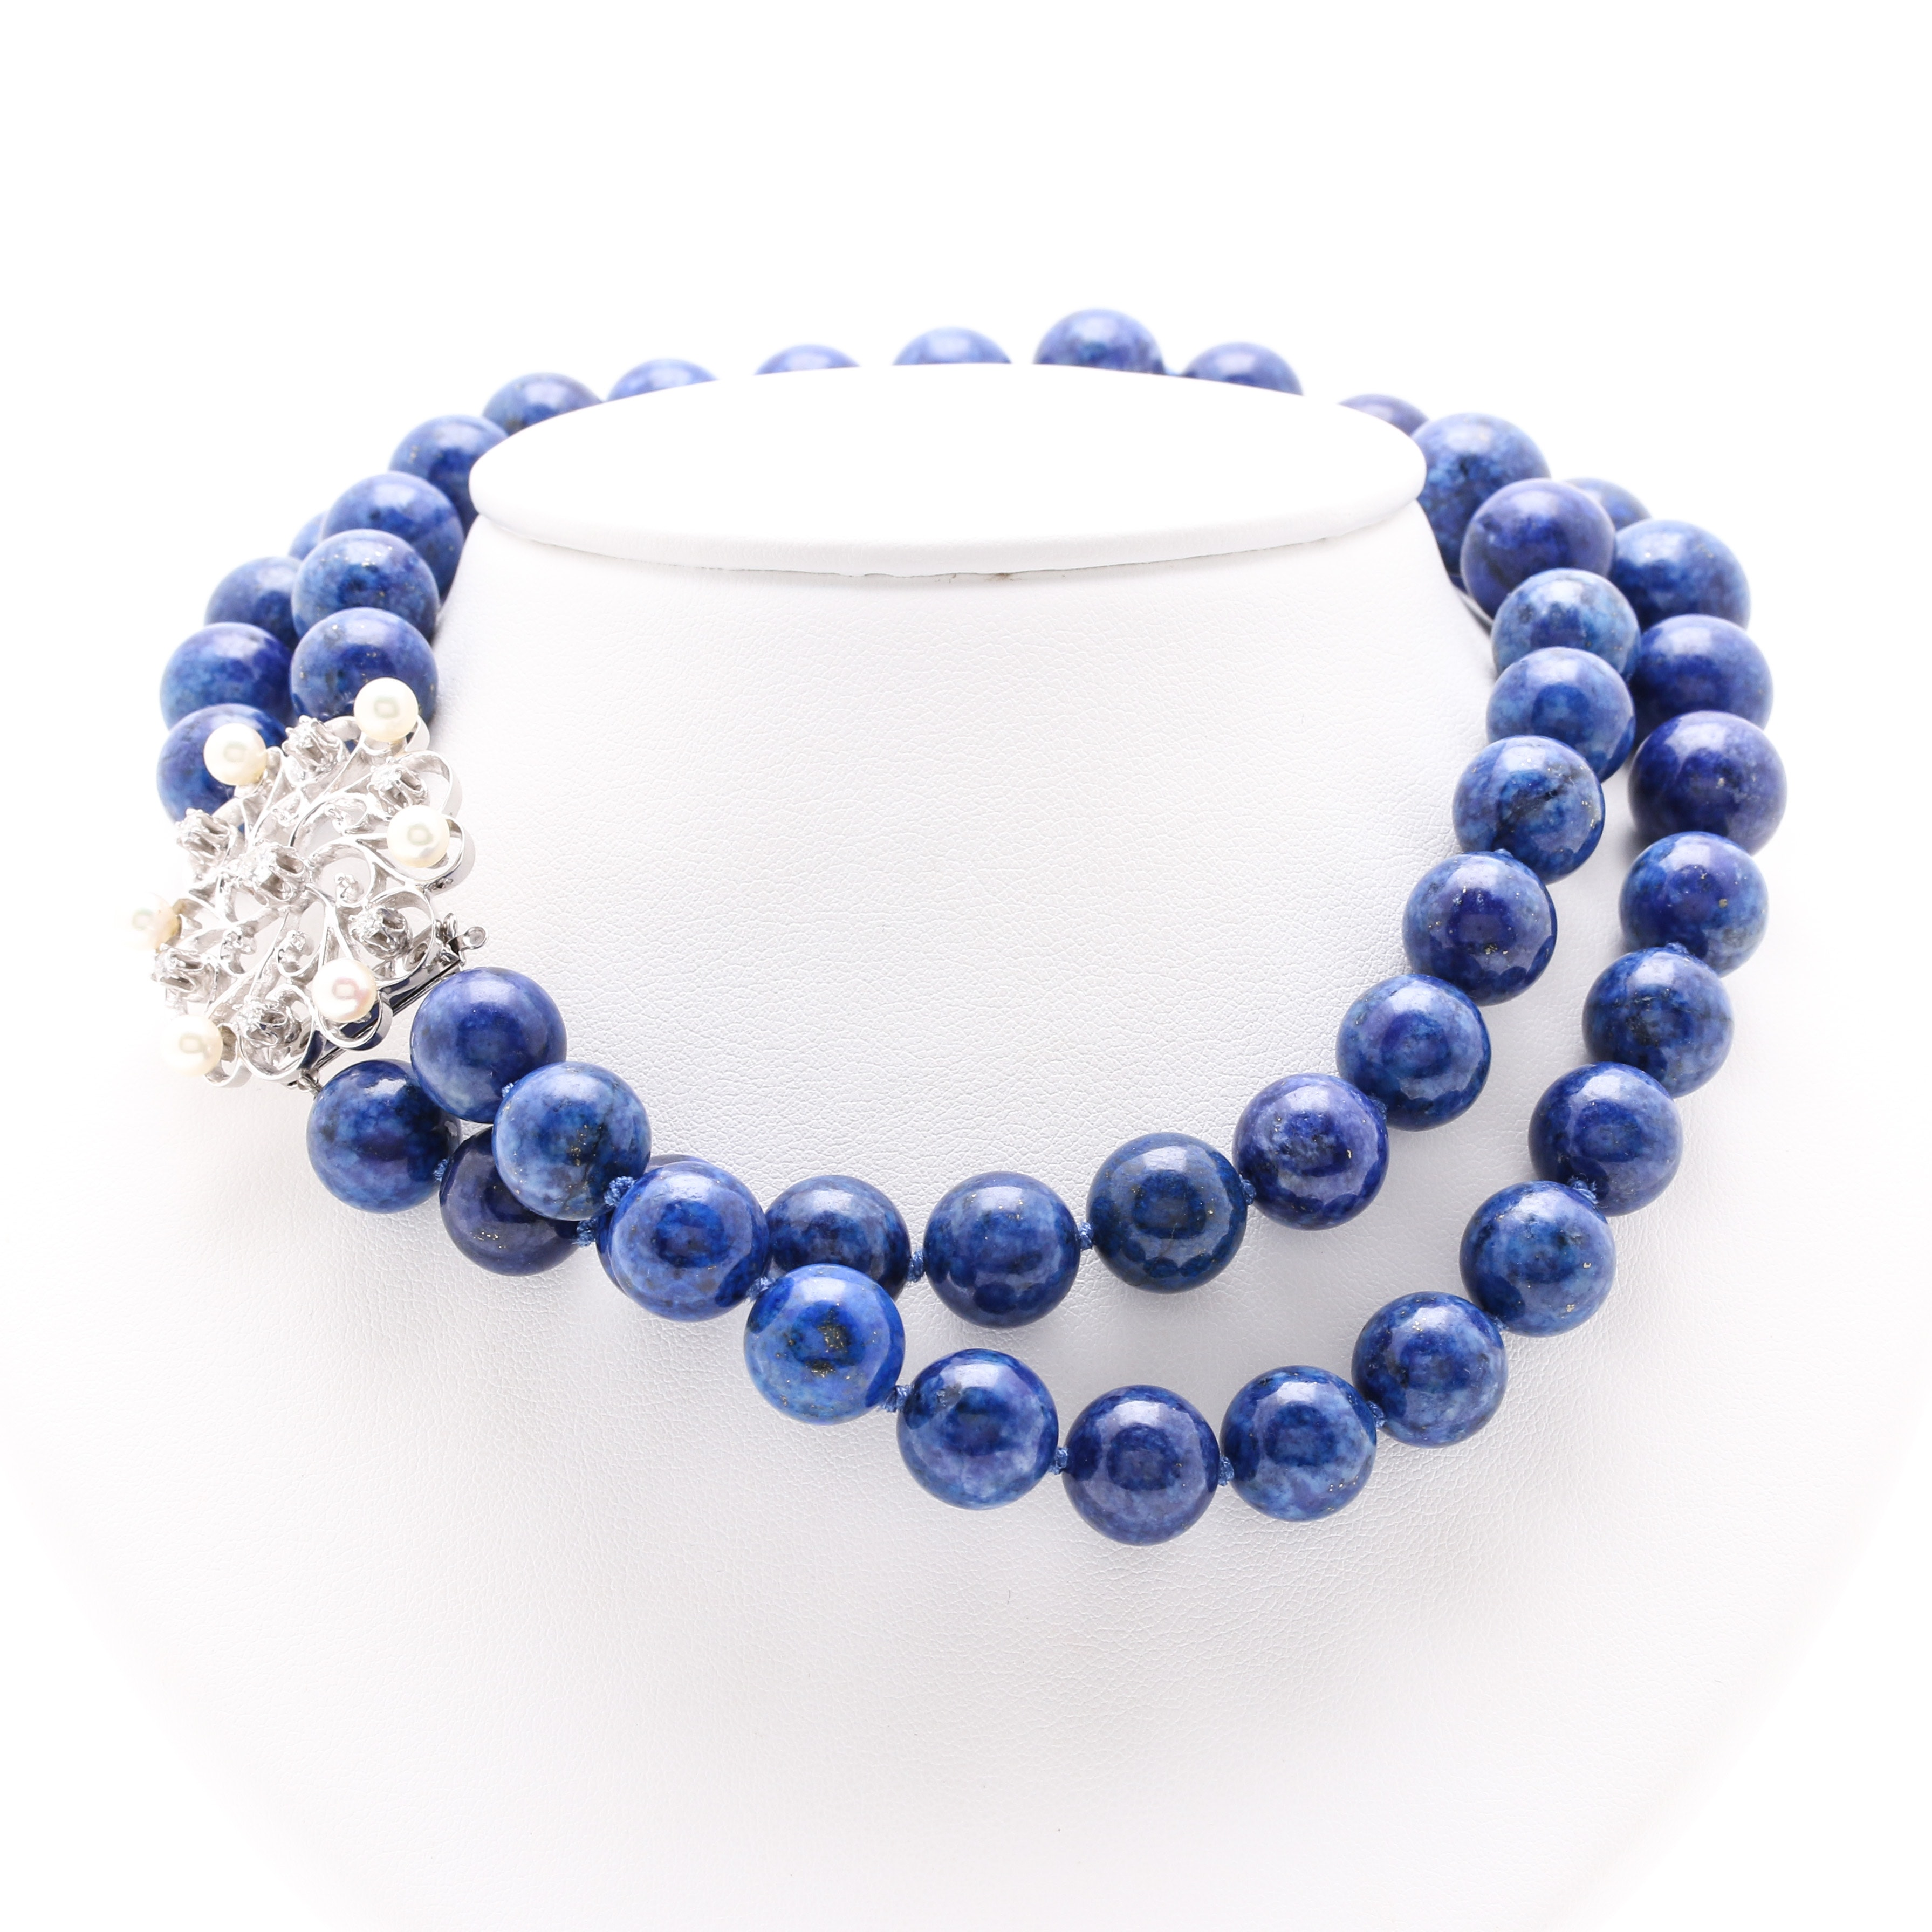 Lapis Lazuli Necklace with 14K White Gold Clasp with Diamonds and Cultured Pearls